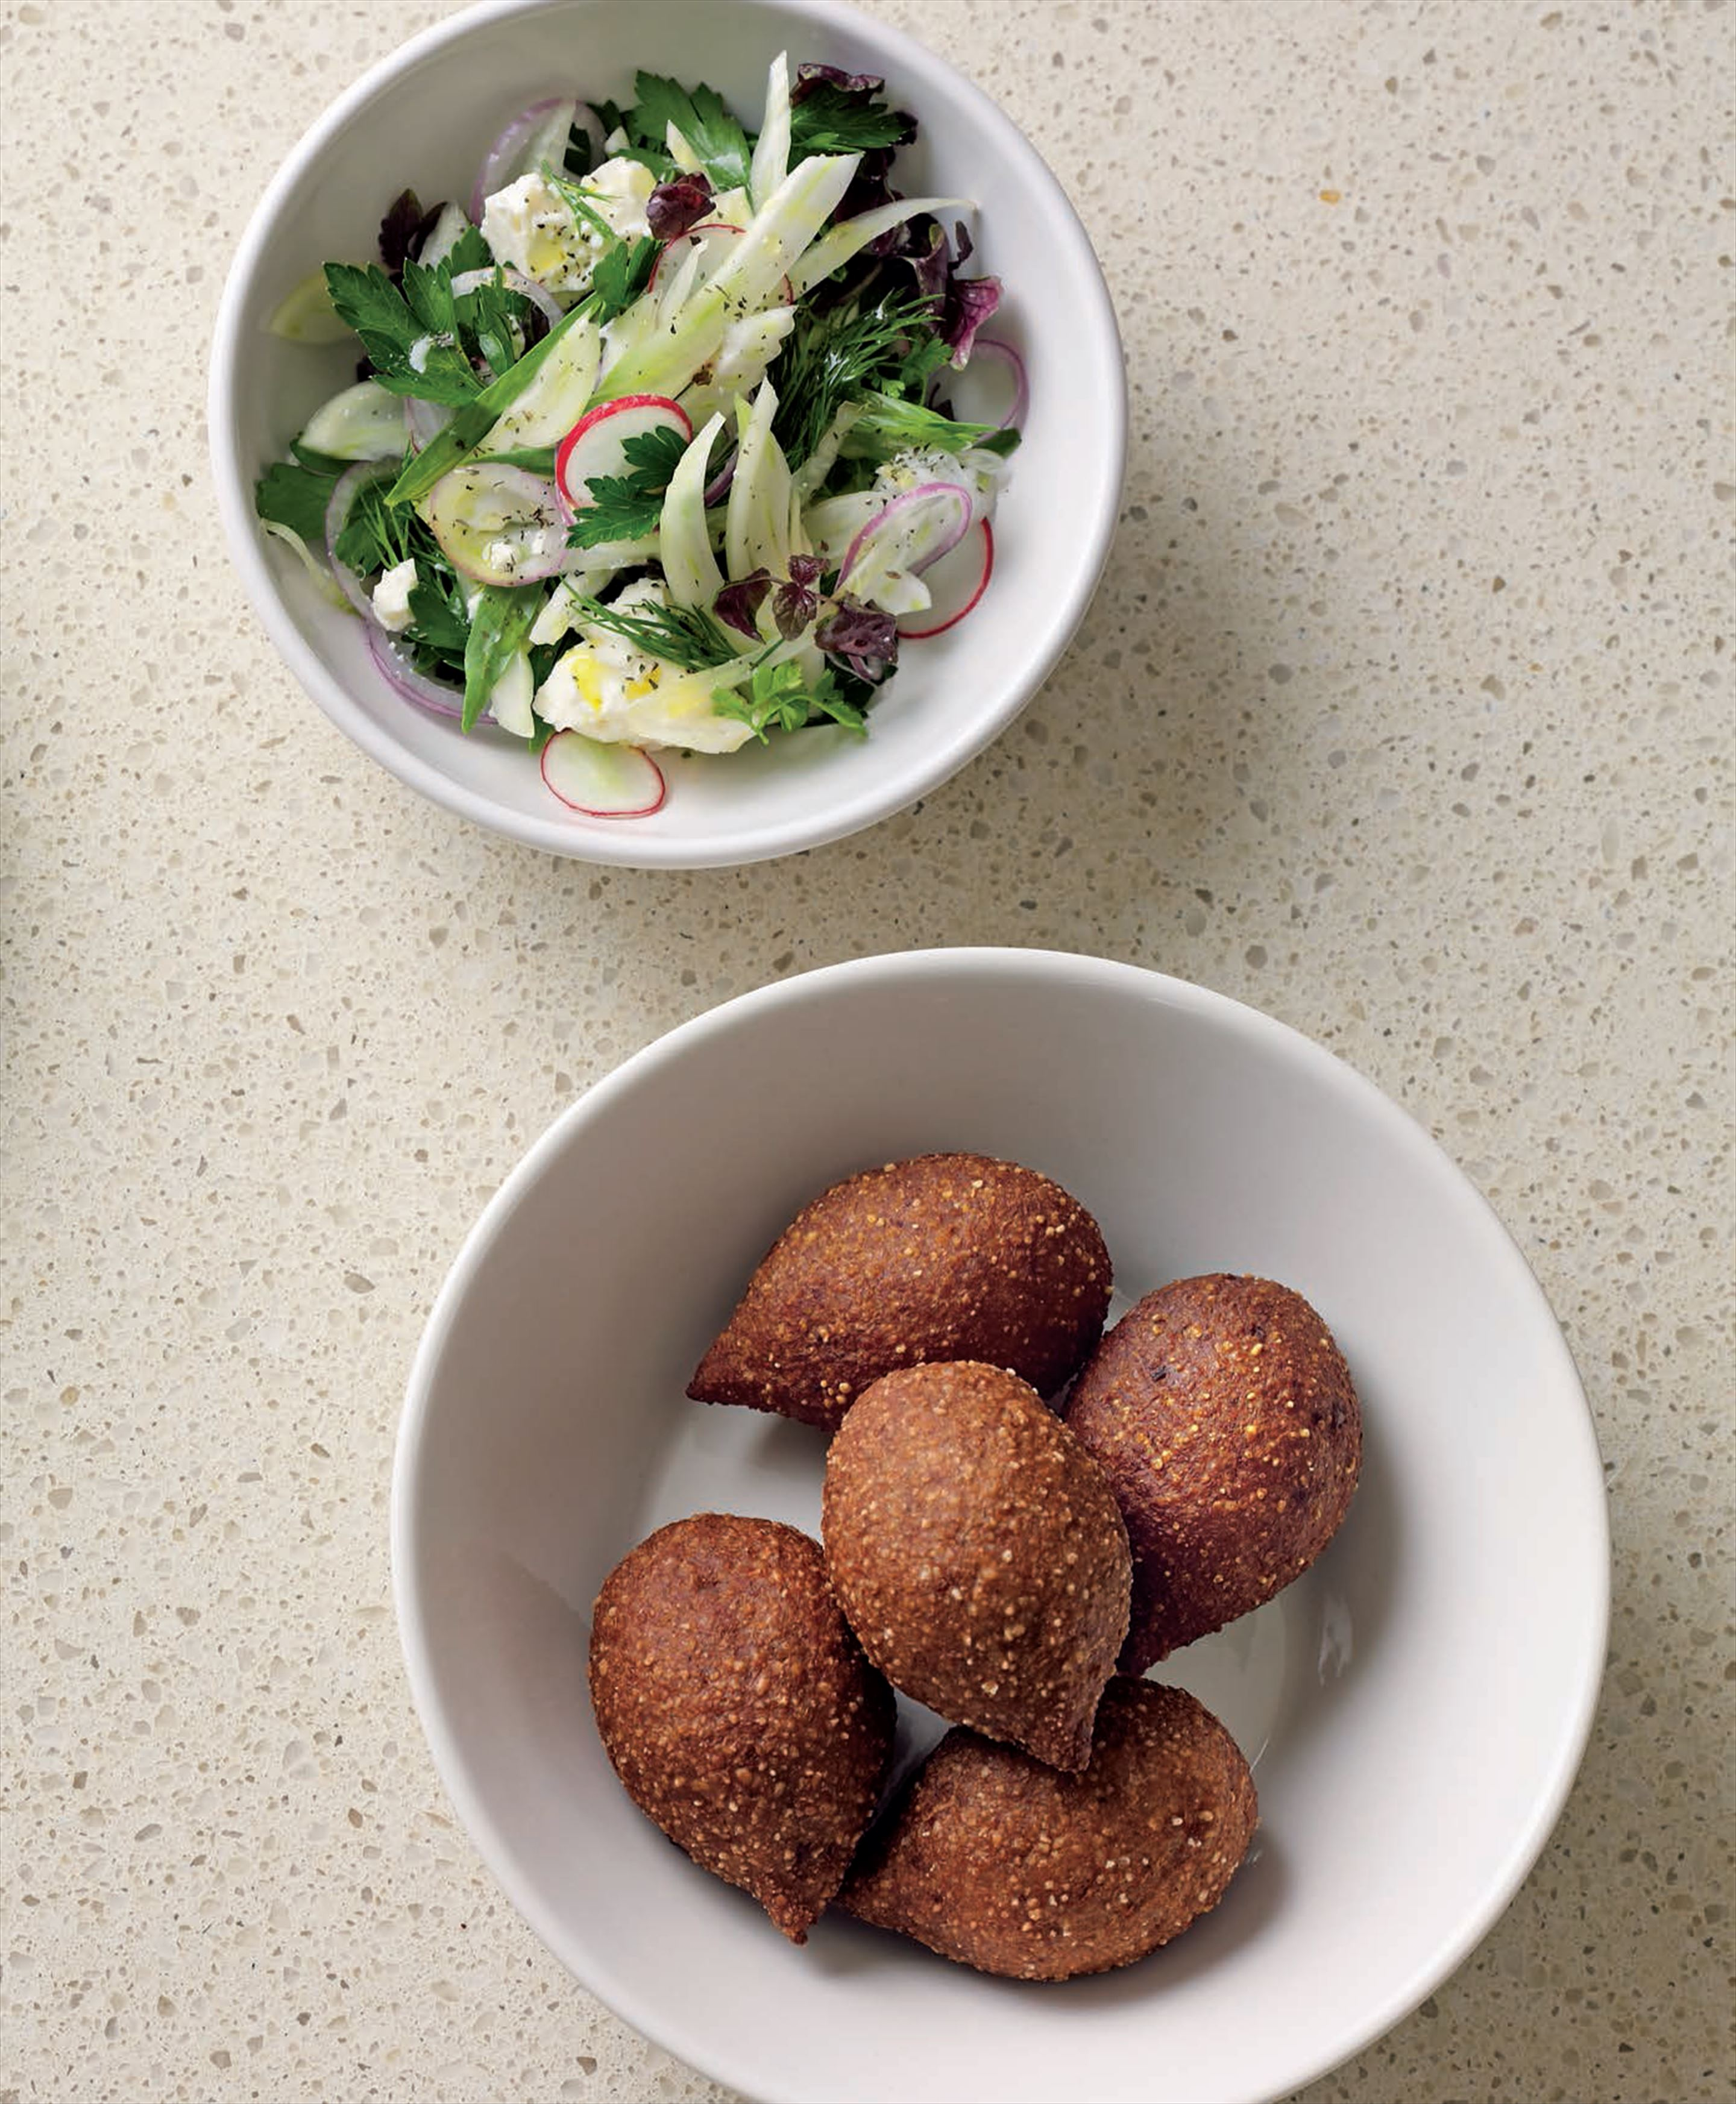 Zghorta-style kibbeh patties stuffed with cinnamon and pine nut butter